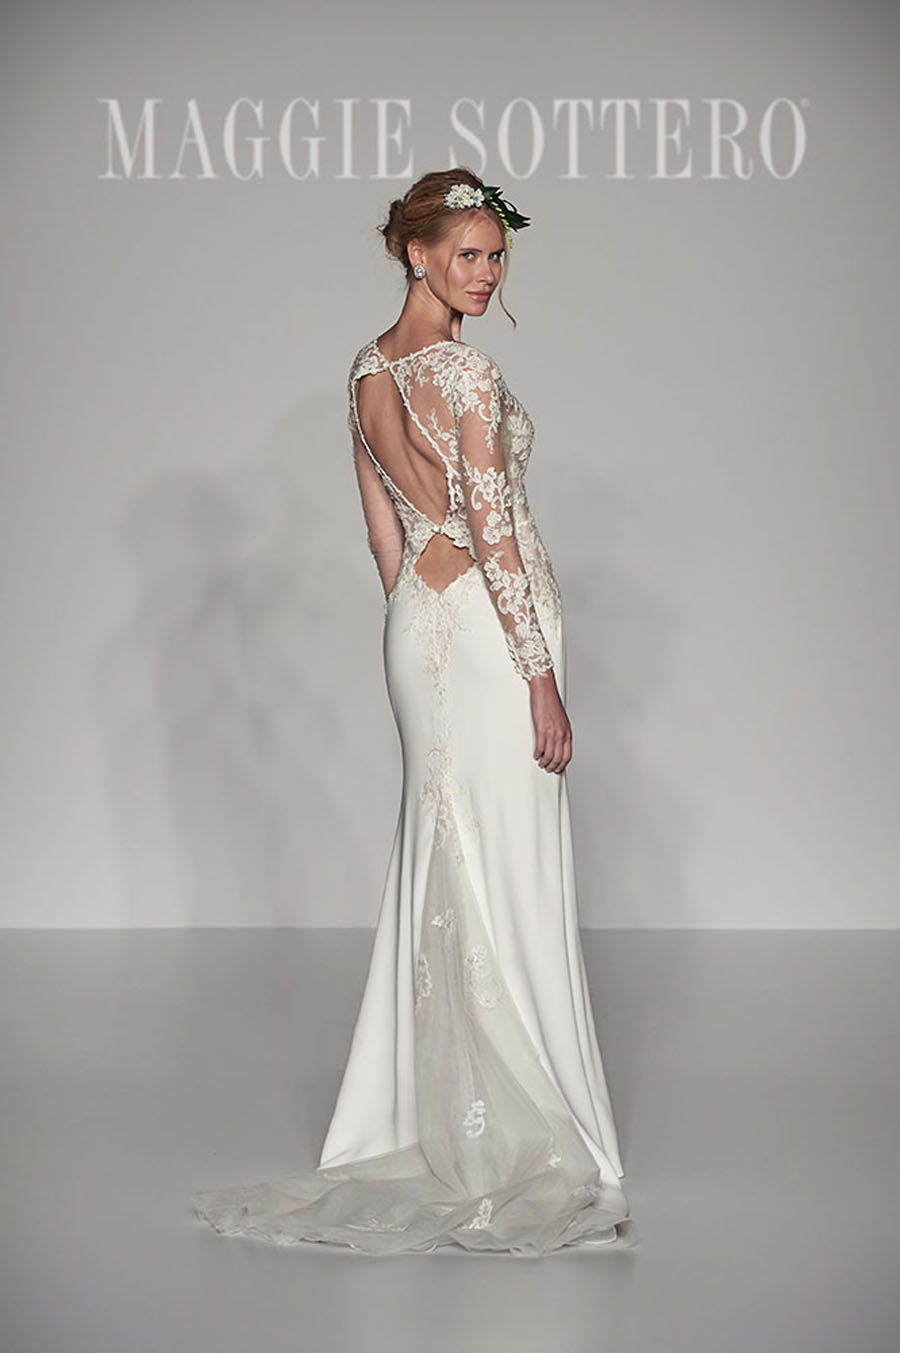 Maggie Sottero Spring 2017 Collection - Blanch Back